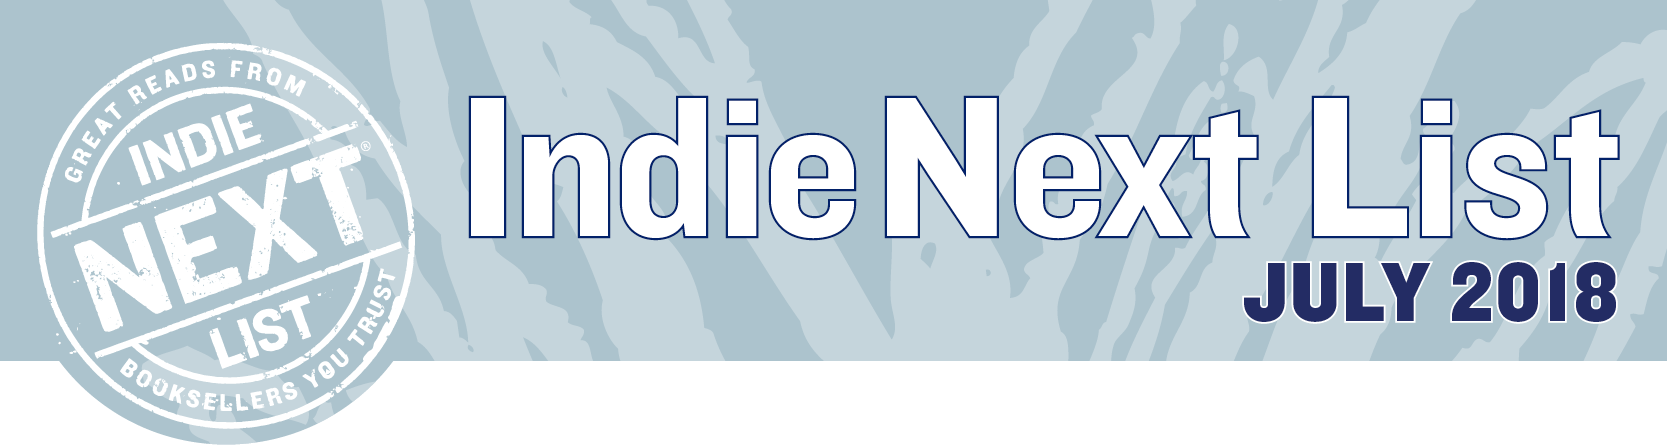 July 2018 Indie Next List Header Image